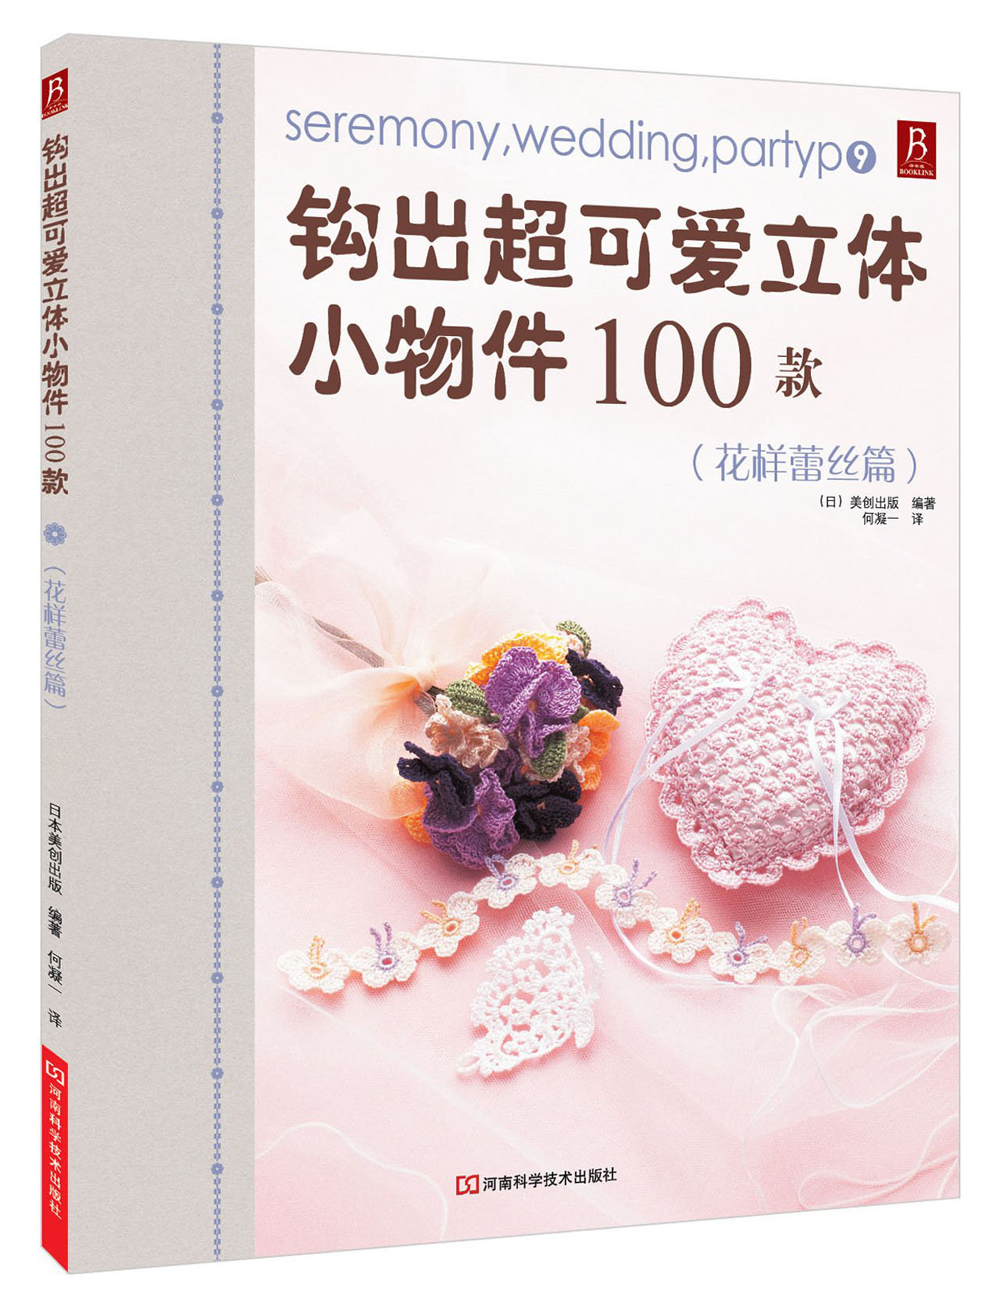 Seremony,Wedding Parthp / Weaving super-cute 3d small objects 100 models Chinese knitting book / Handmade Carft Book 100 super cute little embroidery chinese embroidery handmade art design book